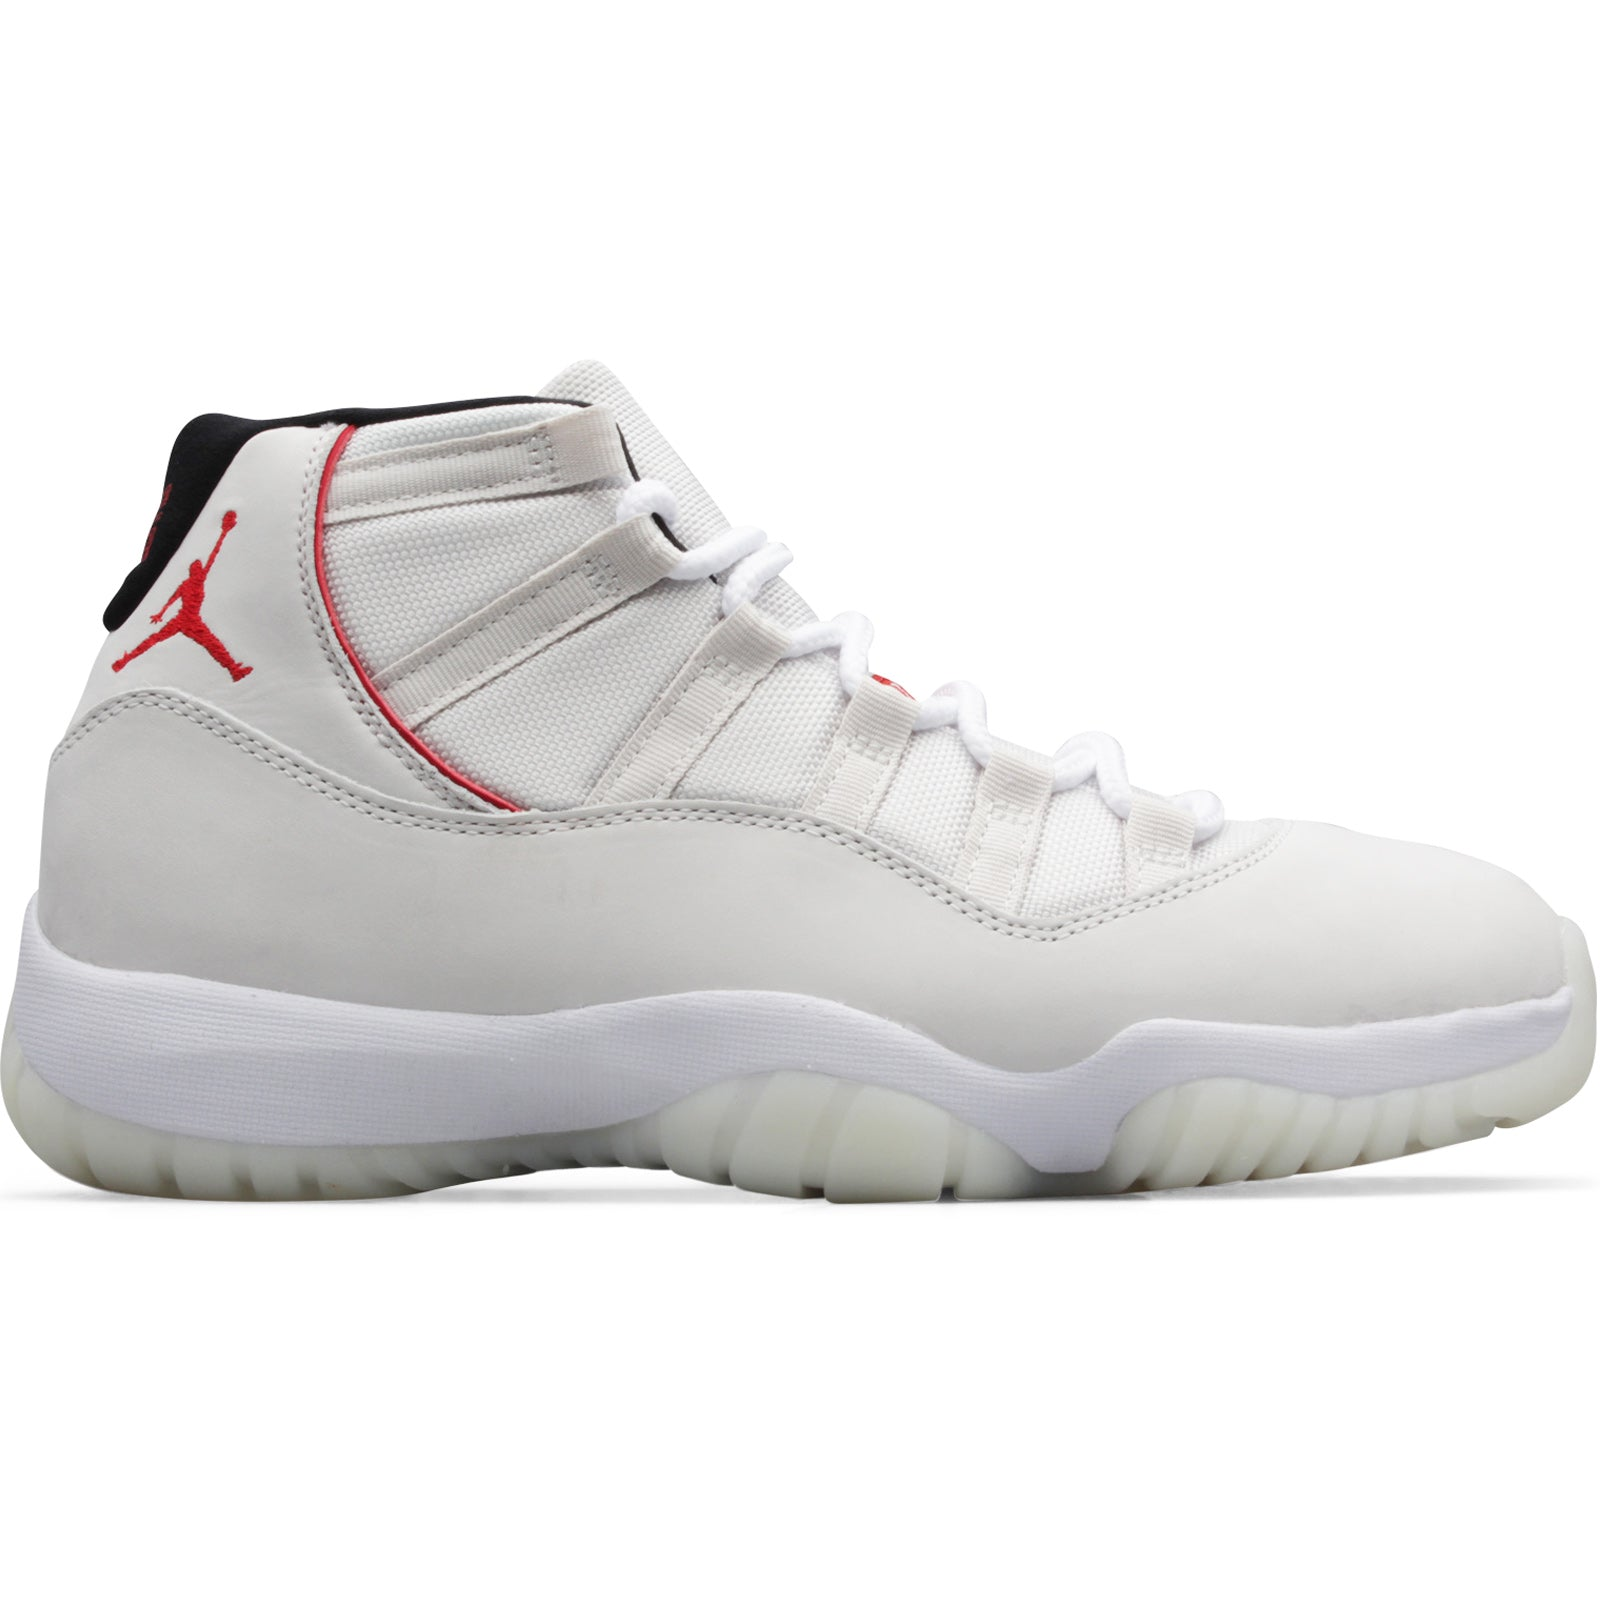 brand new e9f38 d4311 Air Jordan 11 Retro (GS) PLATINUM TINT UNIVERSITY RED-SAIL 378038-016.  Retail   170